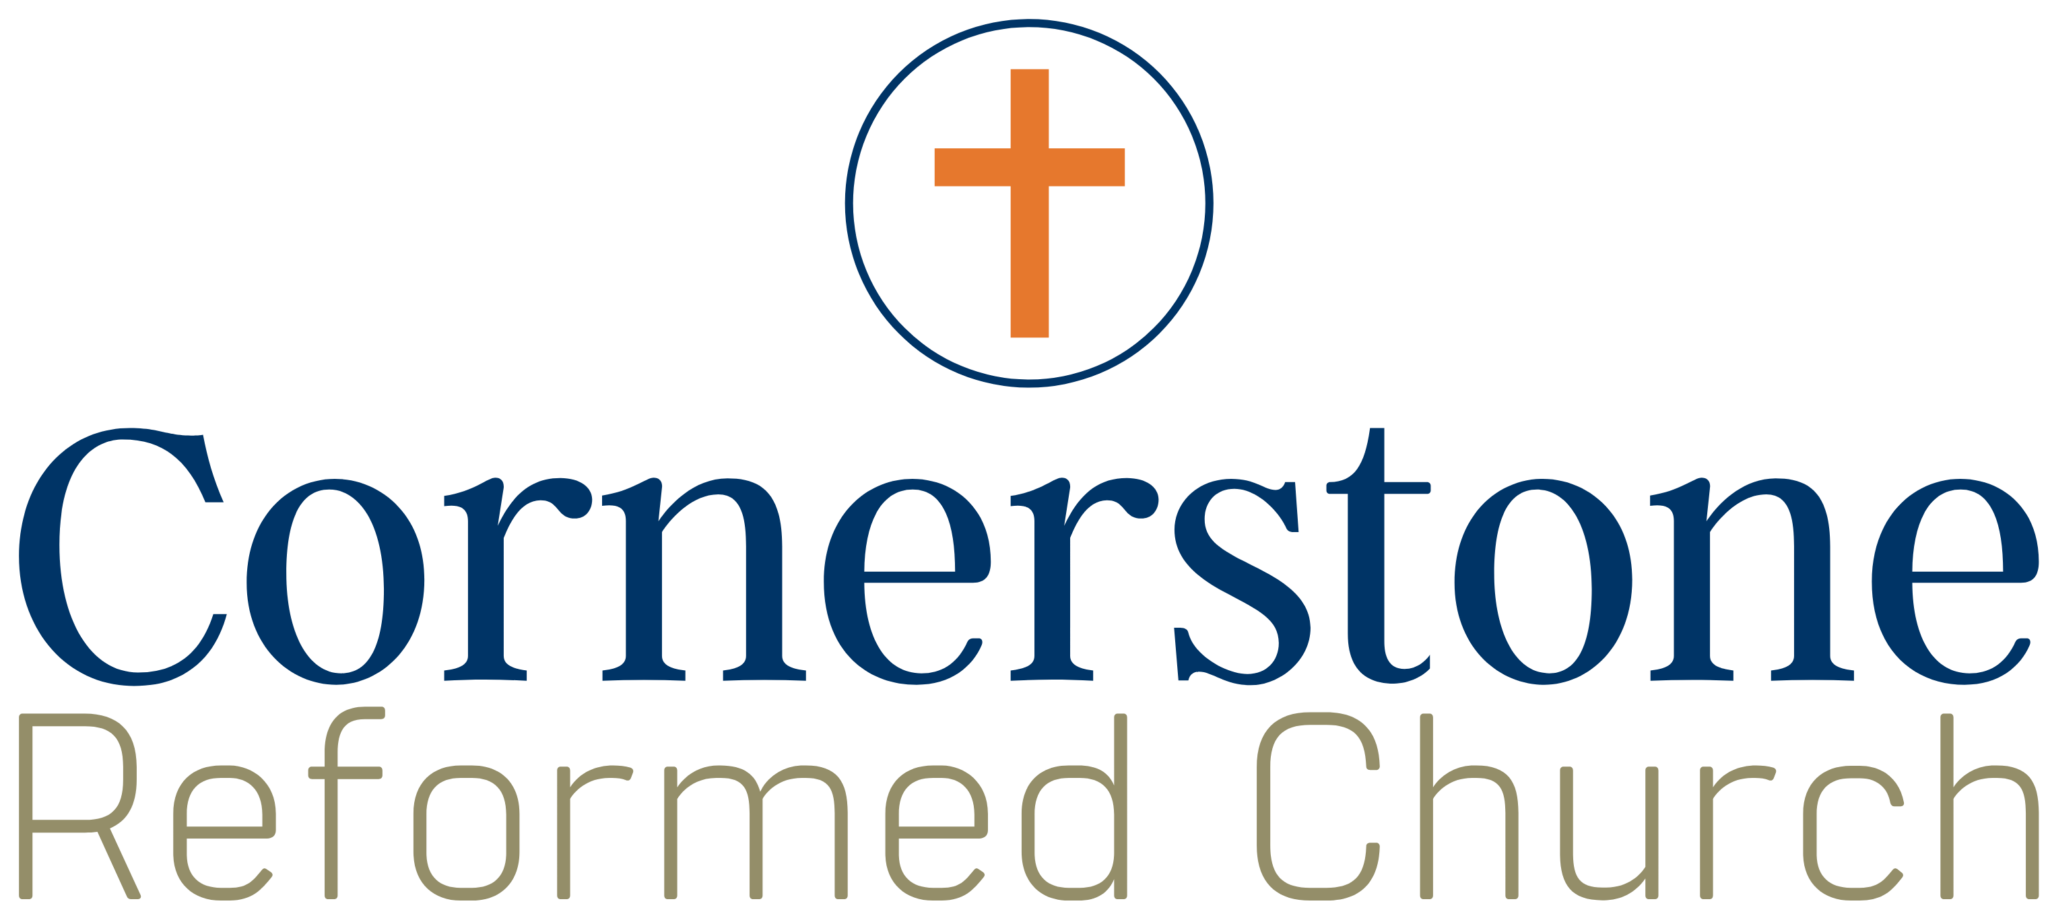 Cornerstone Reformed Church Logo